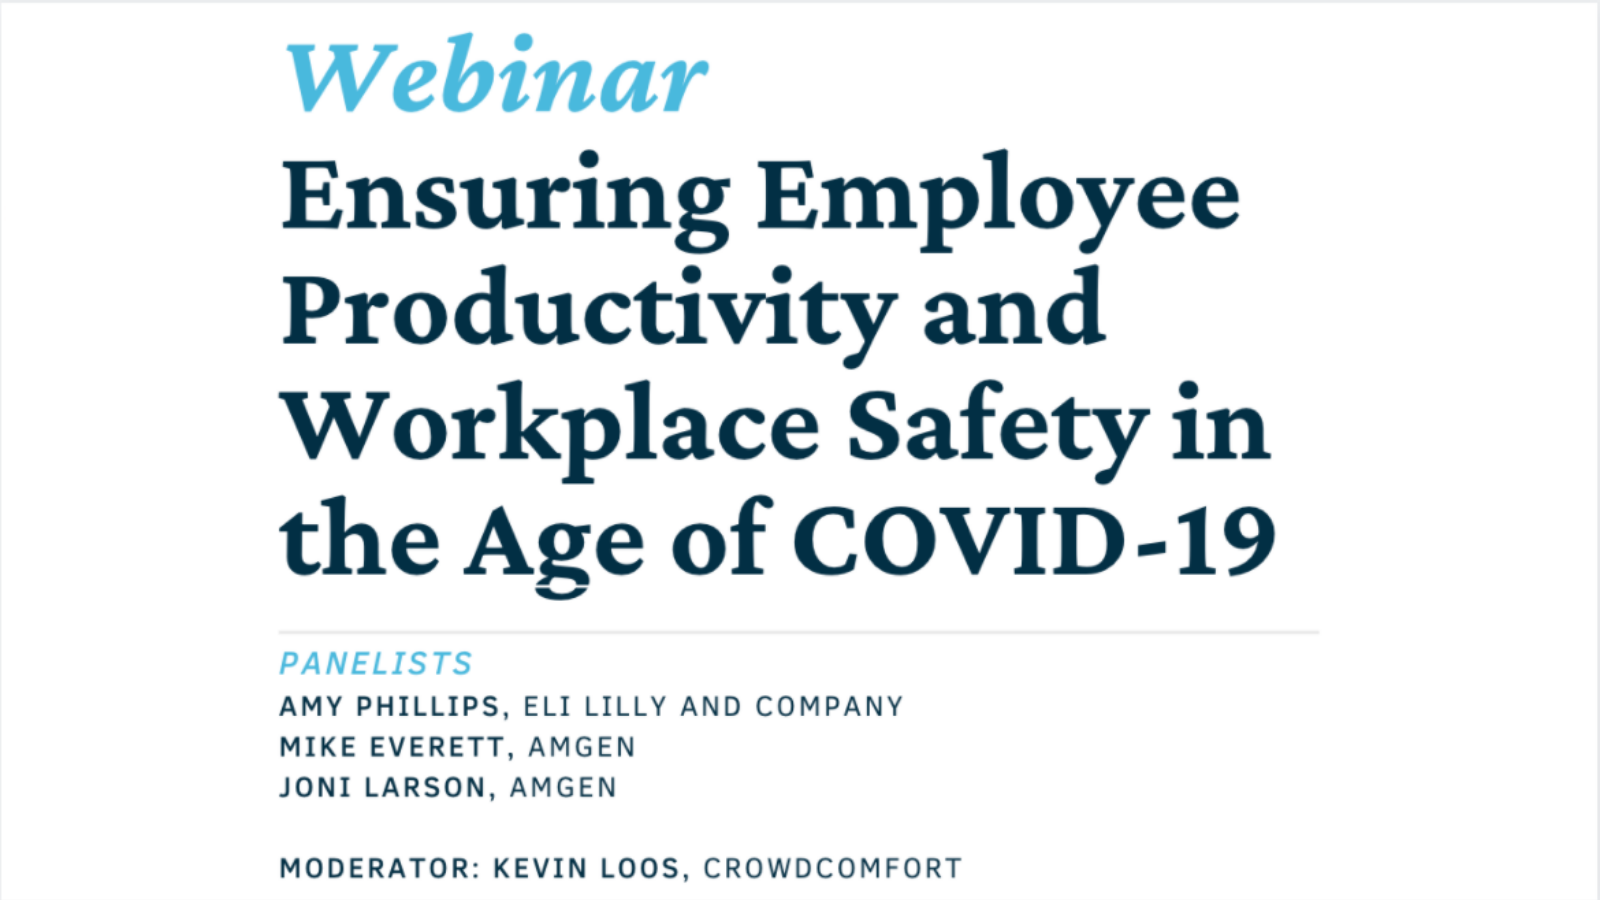 Workplace Safety Facilities Management Webinar